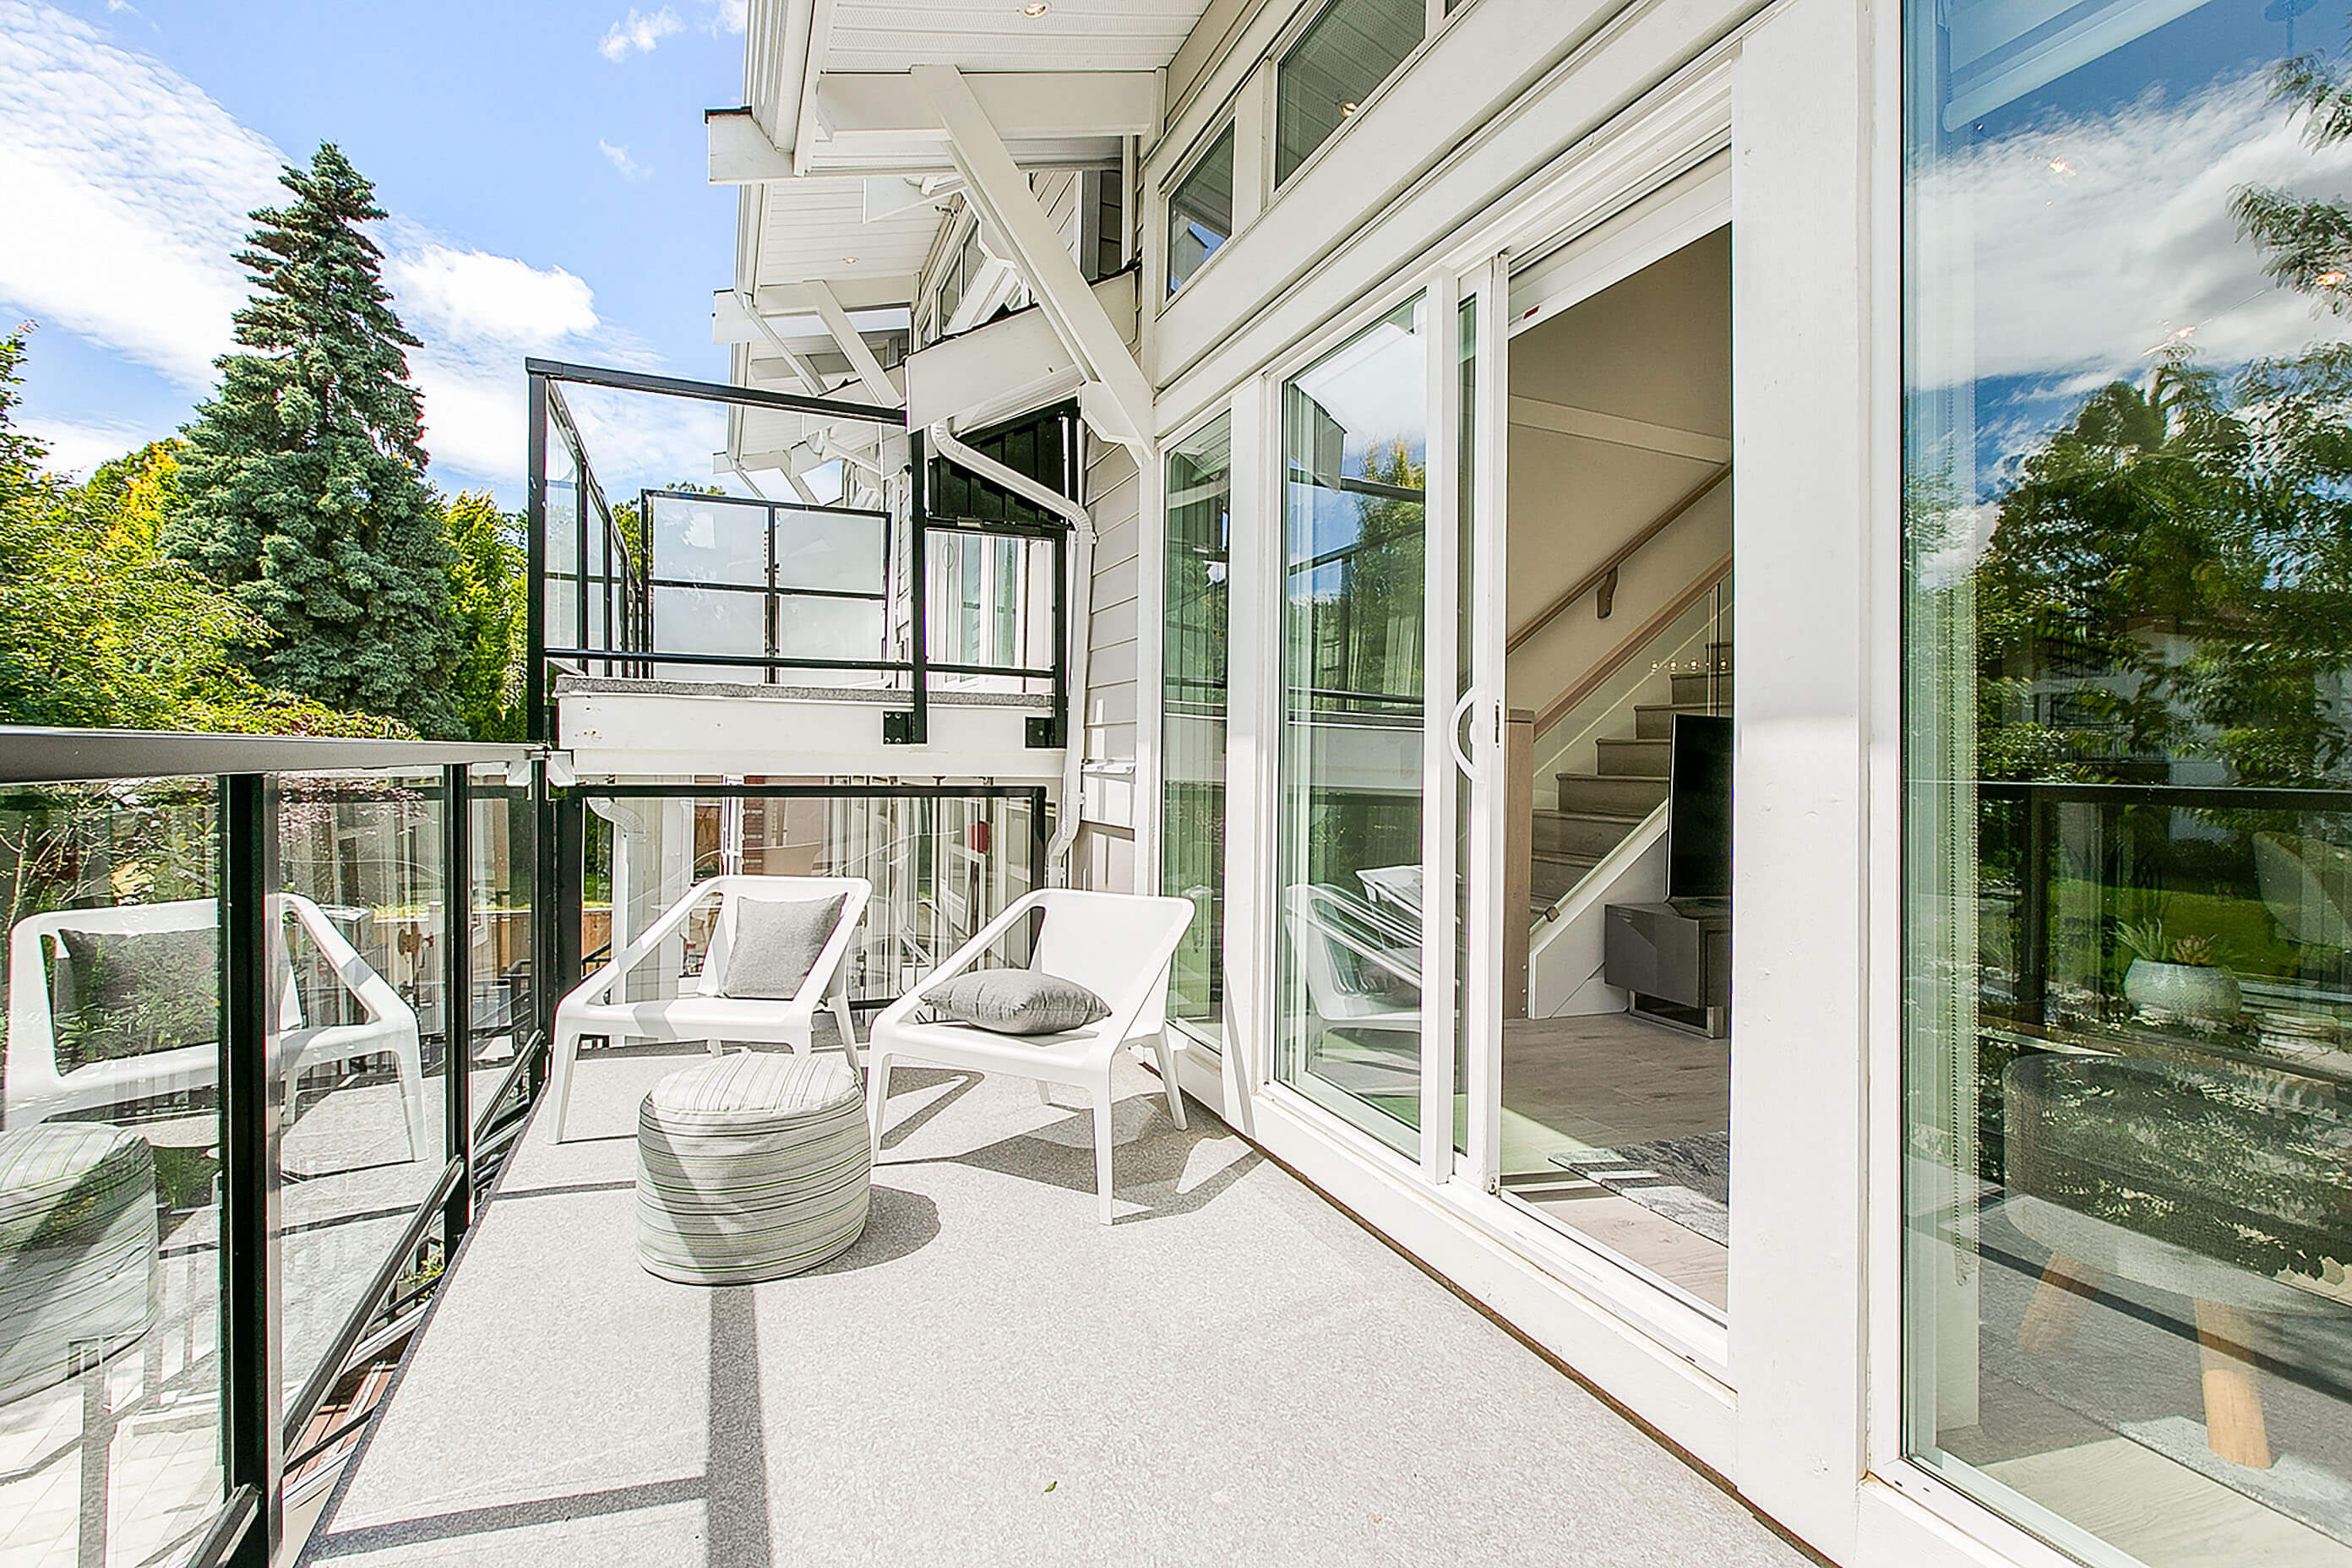 Deck - 2717 Horley St, Vancouver, BC V5R 4R7, Canada!